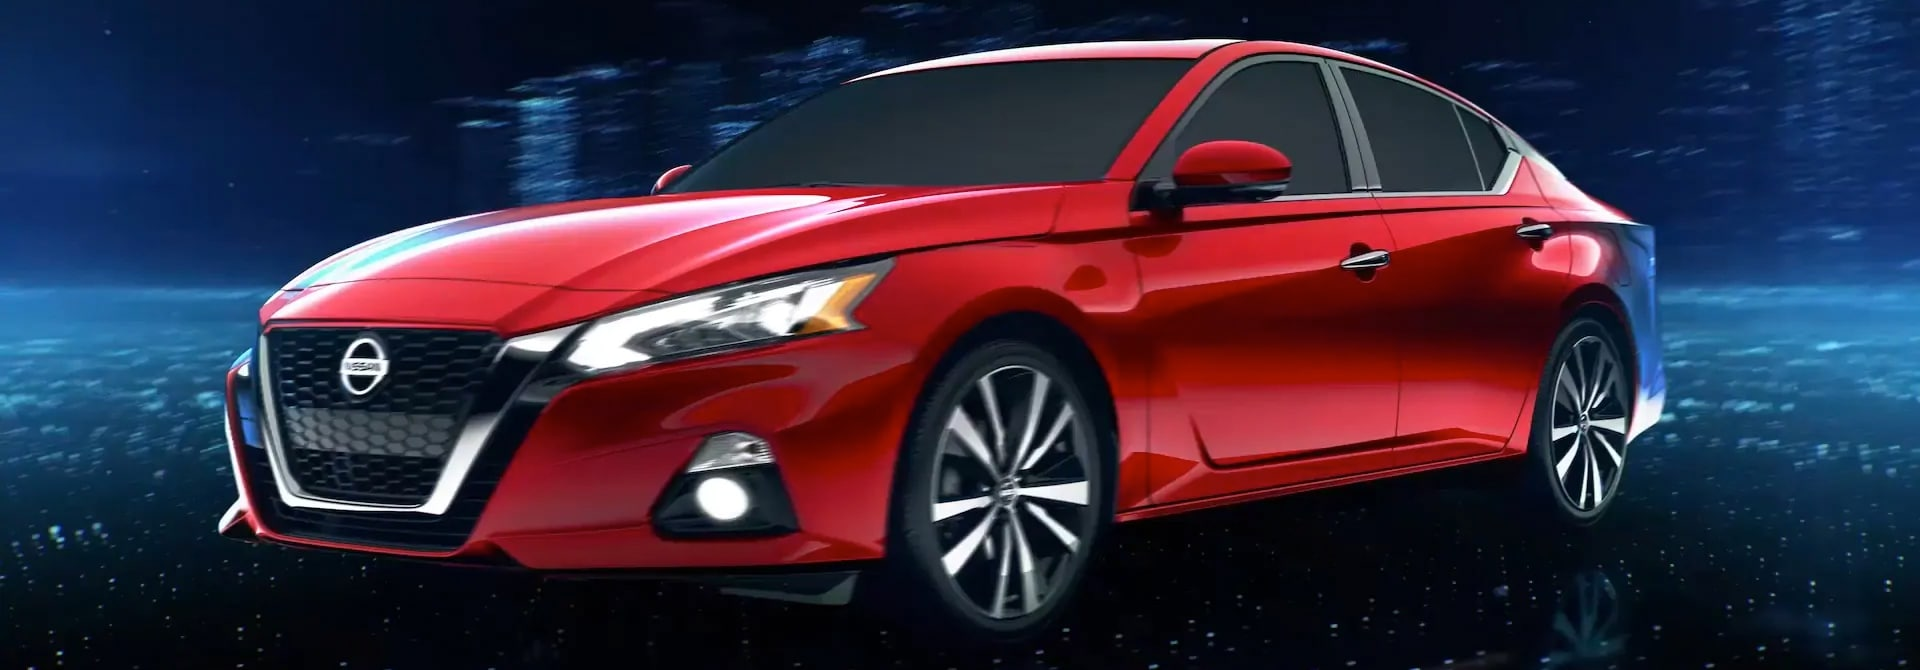 2020 Nissan Altima At Crown Nissan of Greenville